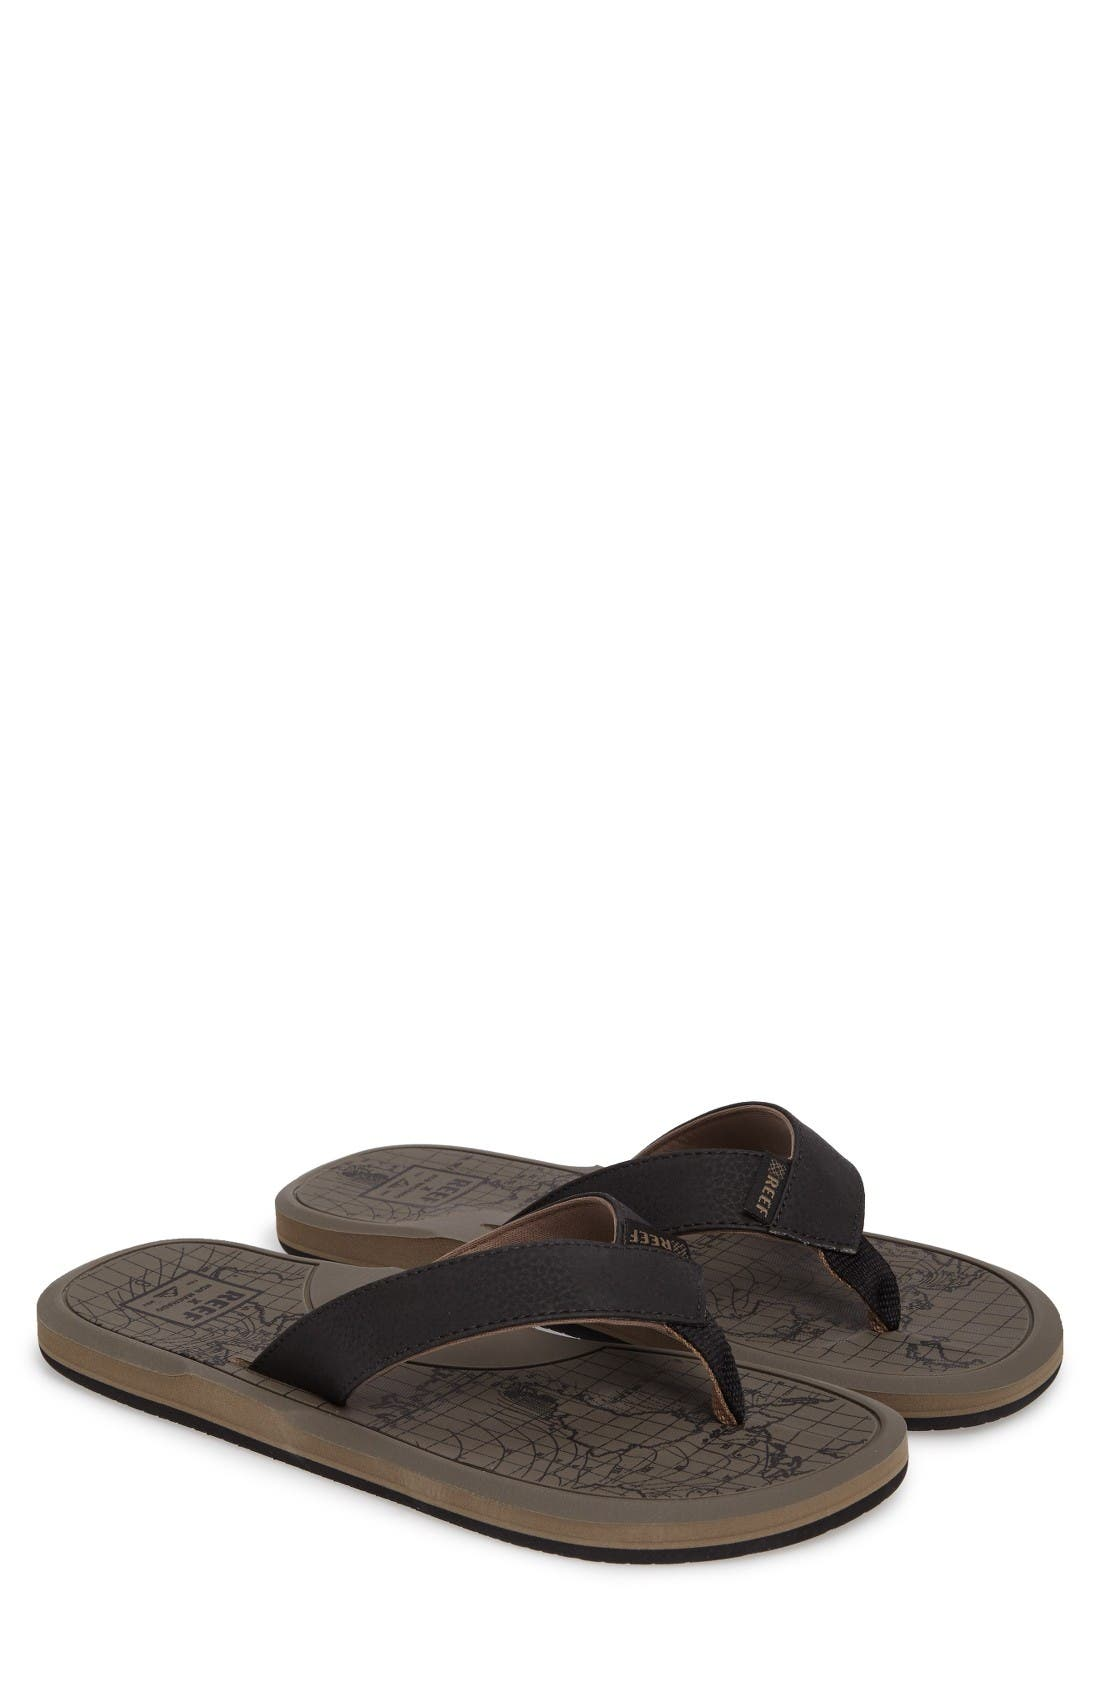 Alternate Image 1 Selected - Reef Machado Flip Flop (Men)